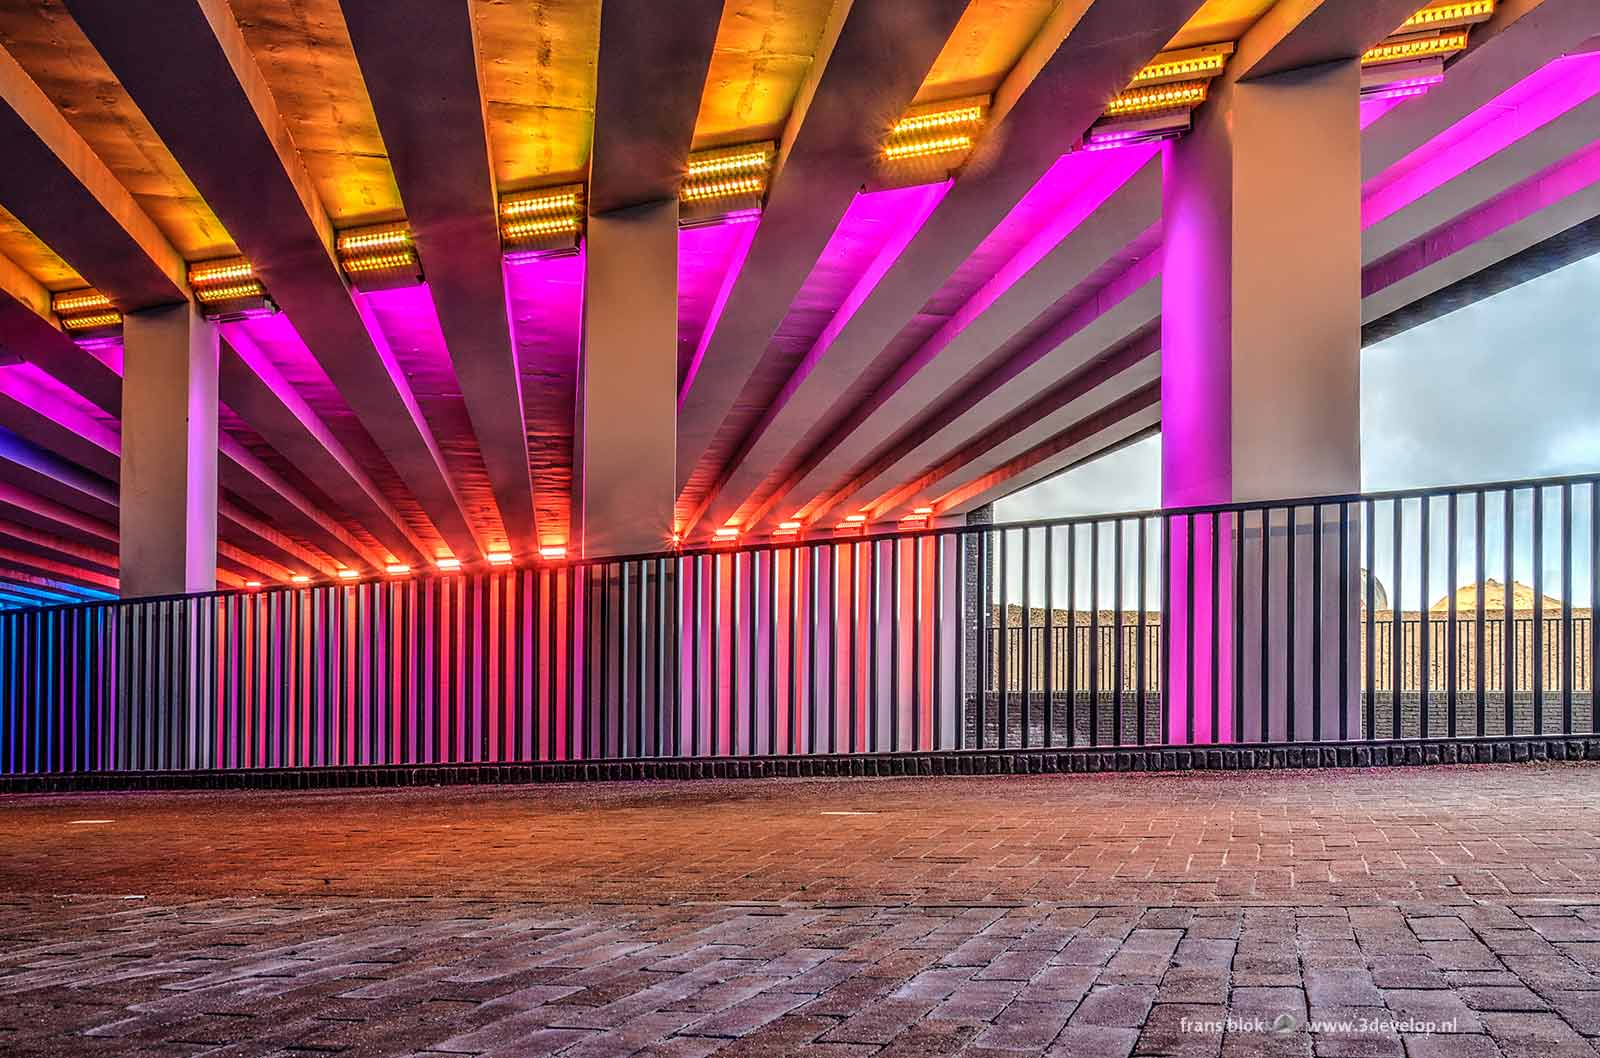 Phto of the light art by Herman Kuijer in the Marstunnel in Zutphen made at the pedestrian section of the railway passage